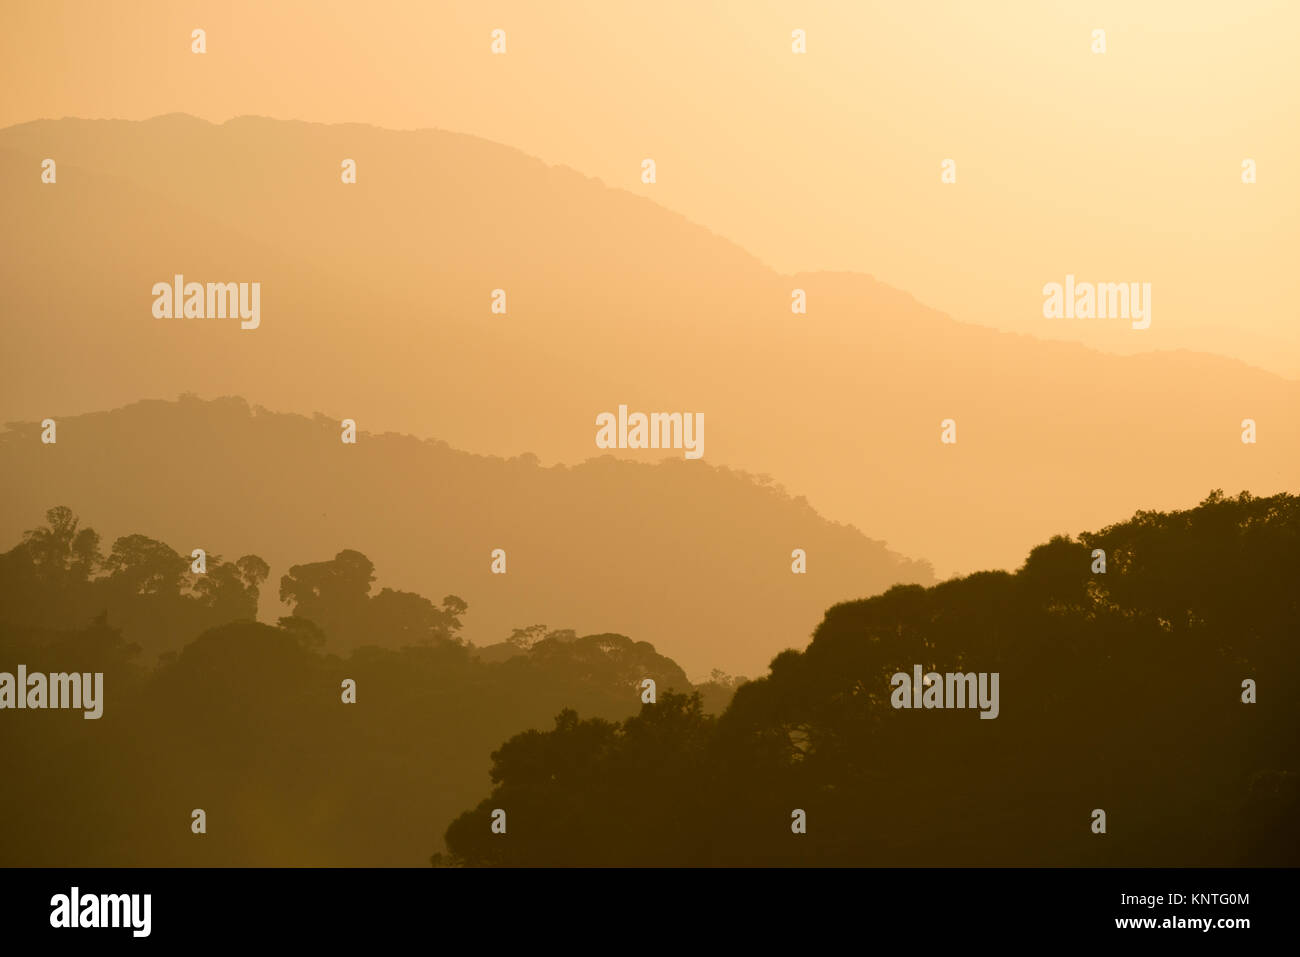 Atlantic Rainforest mountains at Serra de Paranapiacaba, SE Brazil - Stock Image